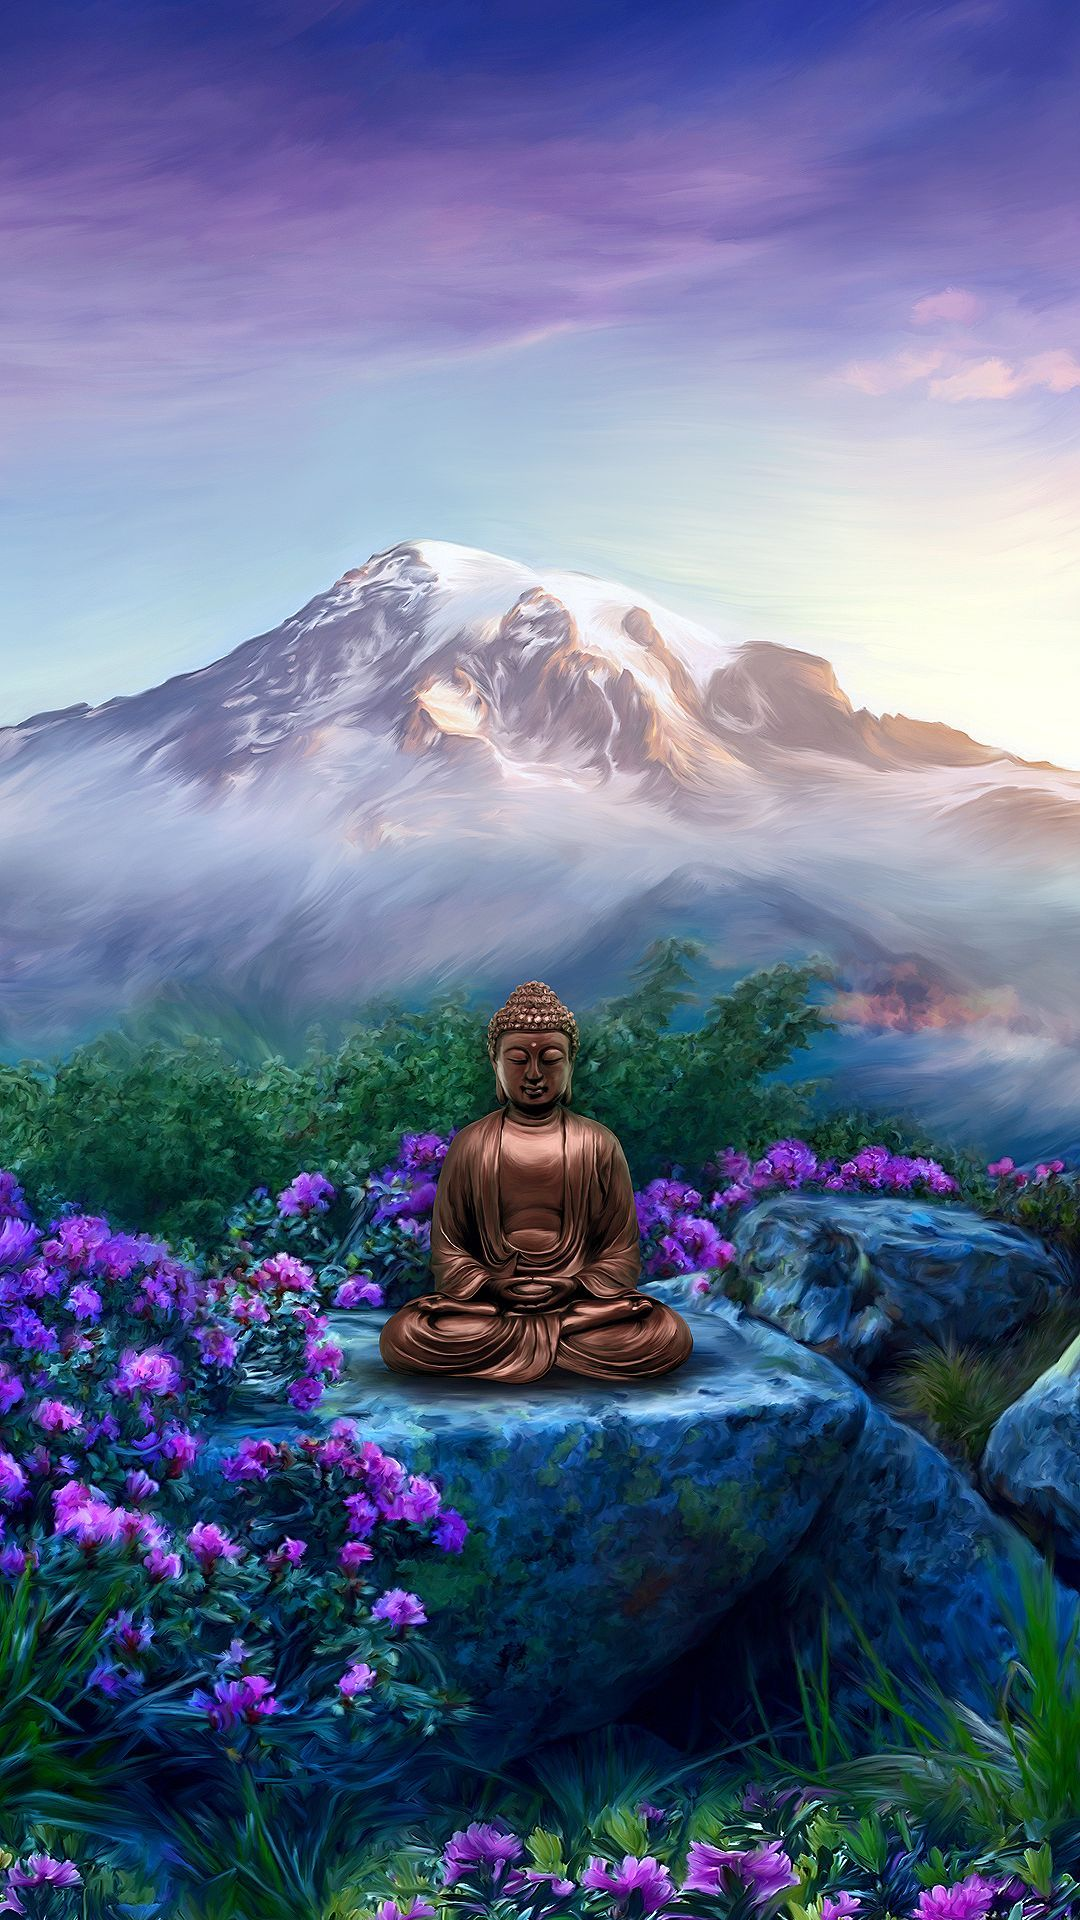 1080x1920 Buddha Wallpaper for Mobile Devices – Artwork by ...